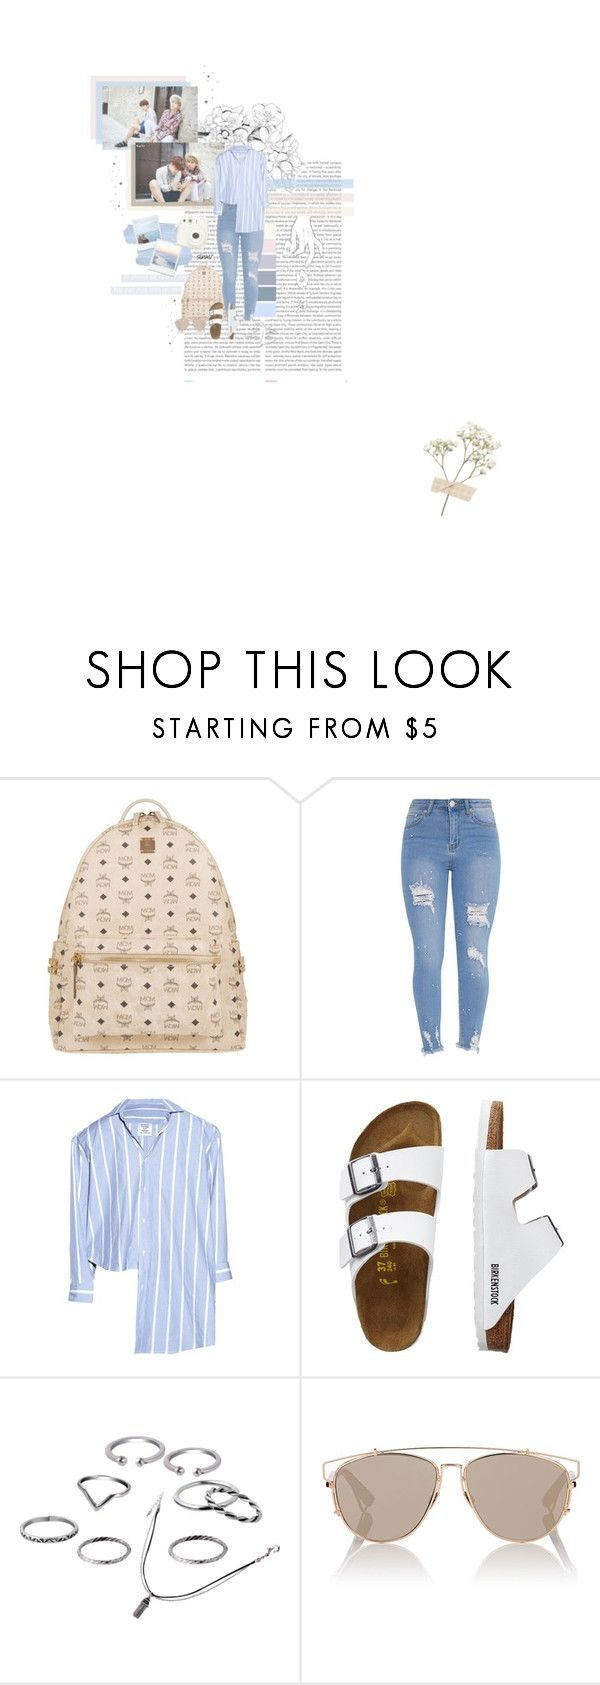 """""""Summer Vibes with Yoongi & Jimin // 8:02 // 20170701"""" by sinxv ❤ liked on Polyvore featuring Oris, GET LOST, MCM, Vetements, TravelSmith, Christian Dior and Fujifilm"""